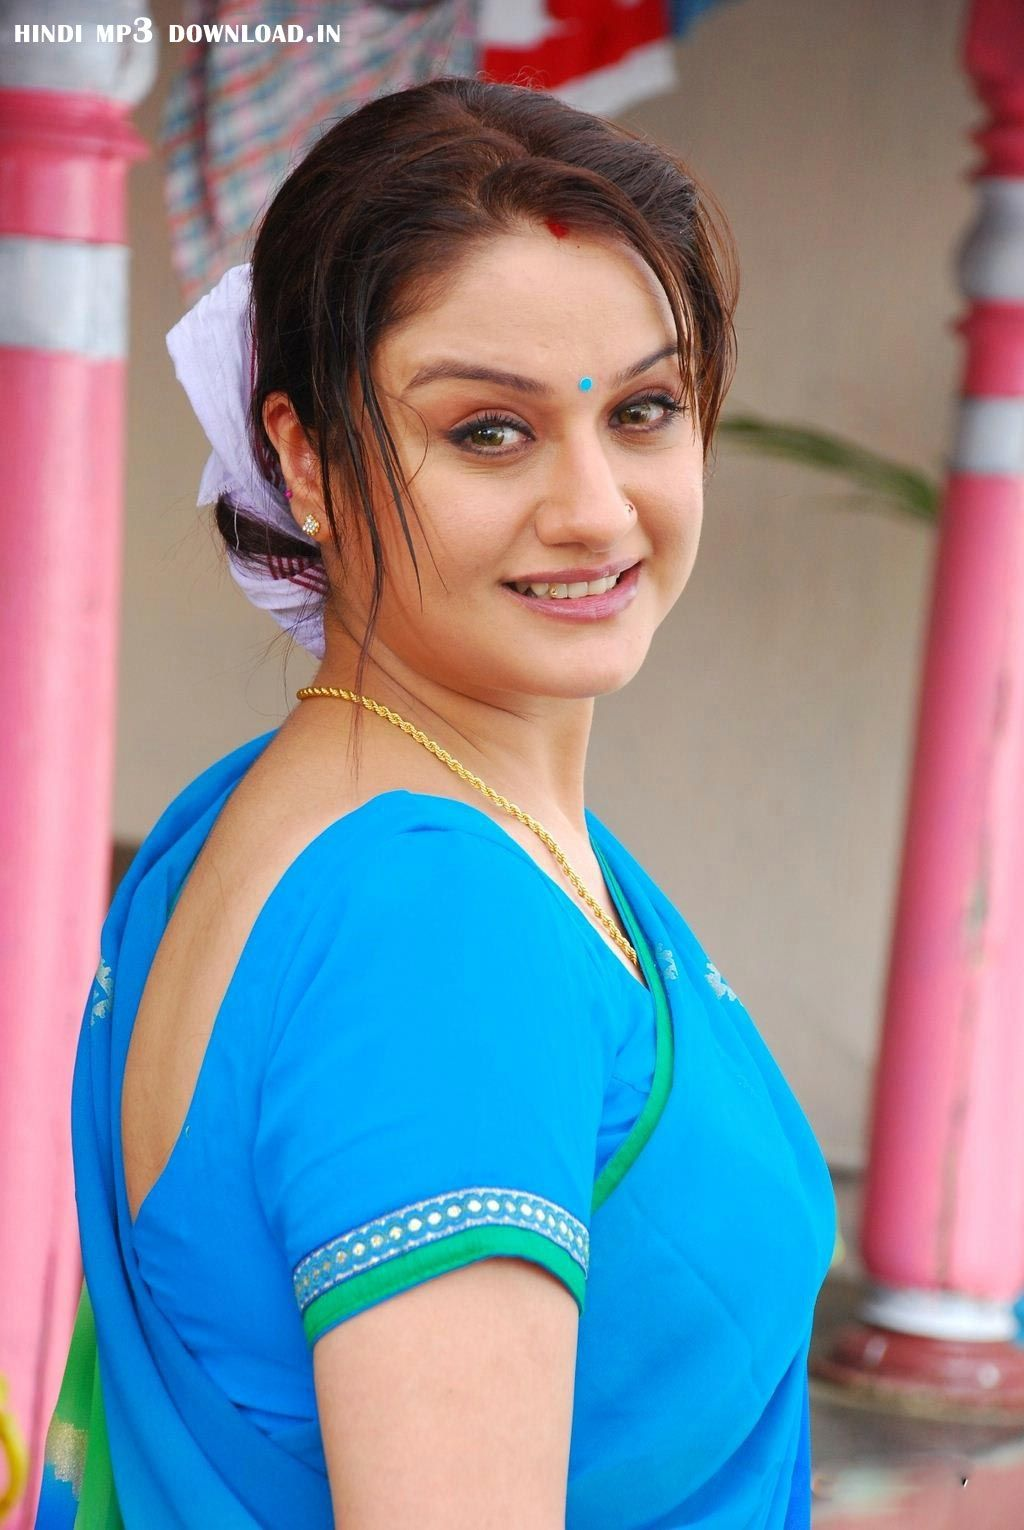 Sonia Agarwal naked (51 photo), Topless, Is a cute, Instagram, butt 2015